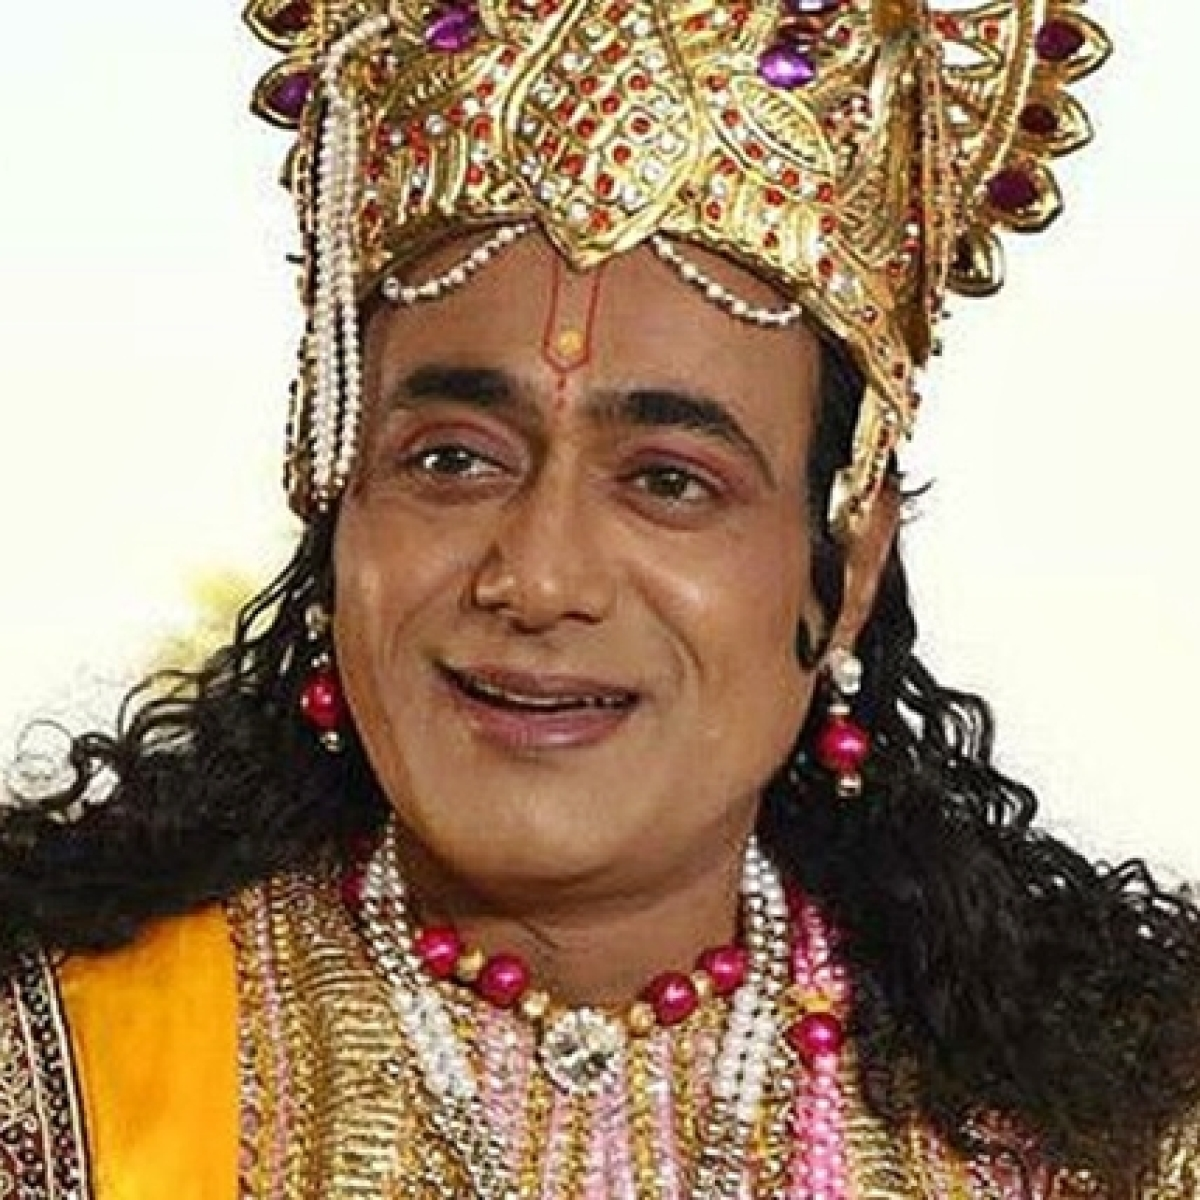 Double tap for darshan: Lord Krishna from 'Mahabharat' aka Nitish Bharadwaj joins Instagram